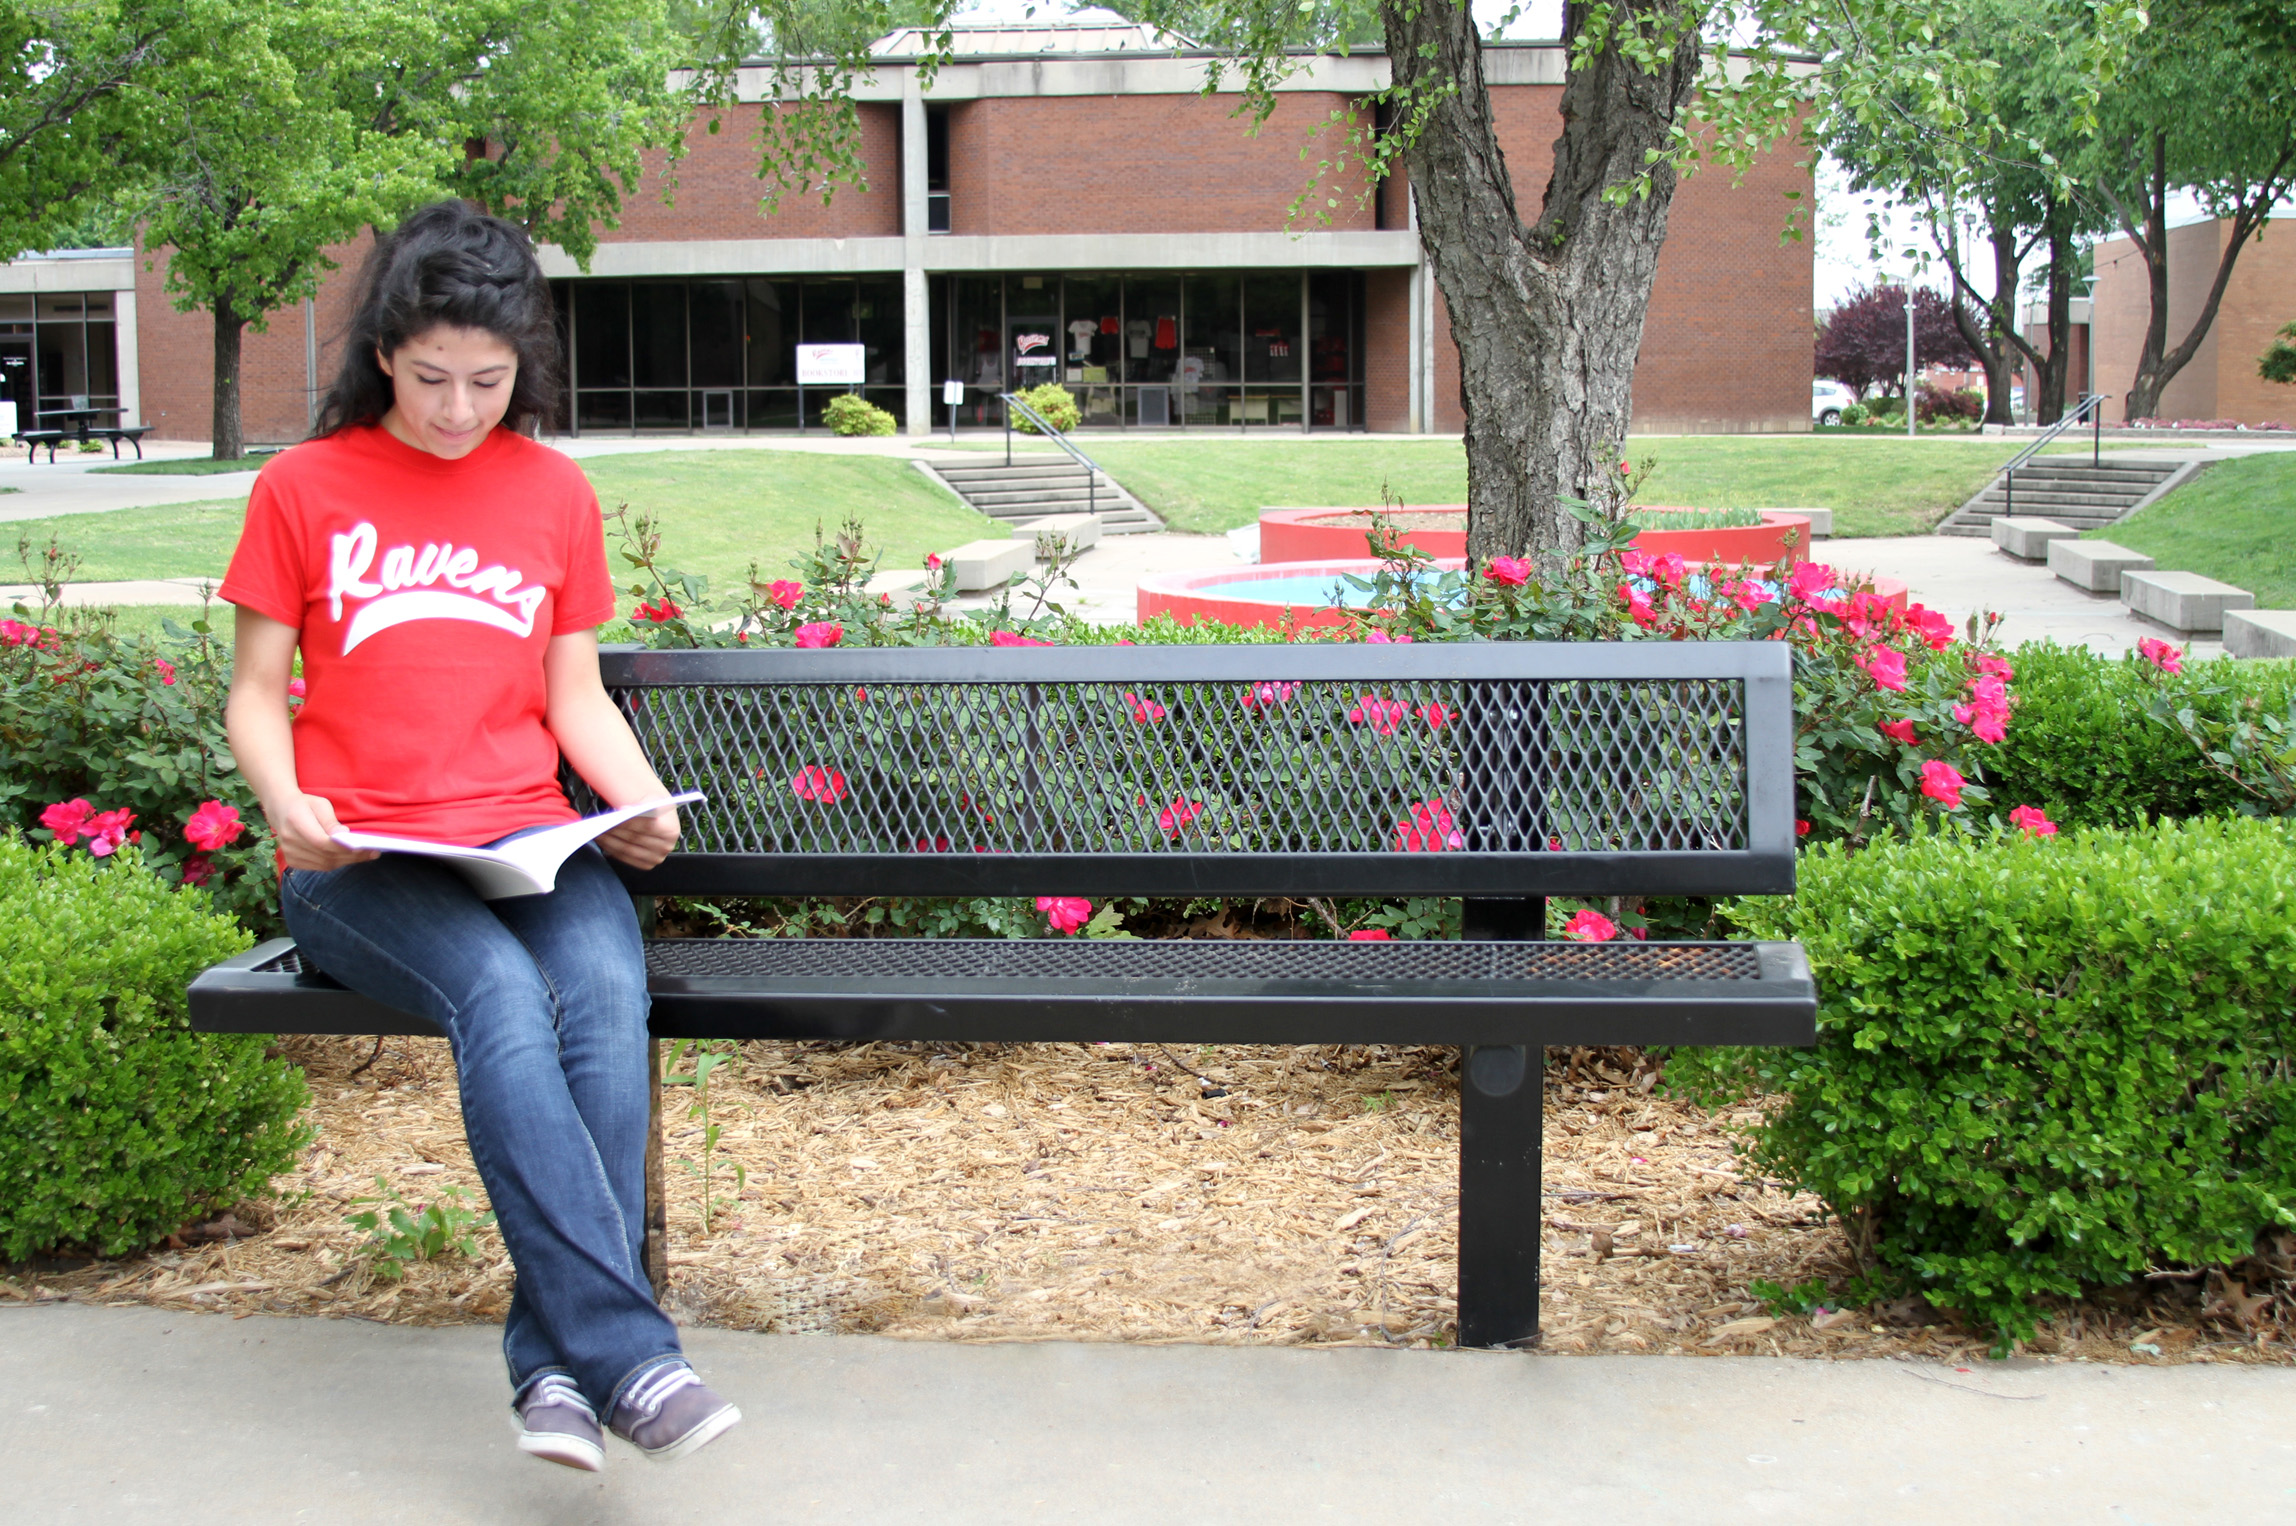 Student Sitting on Bench in College Courtyard